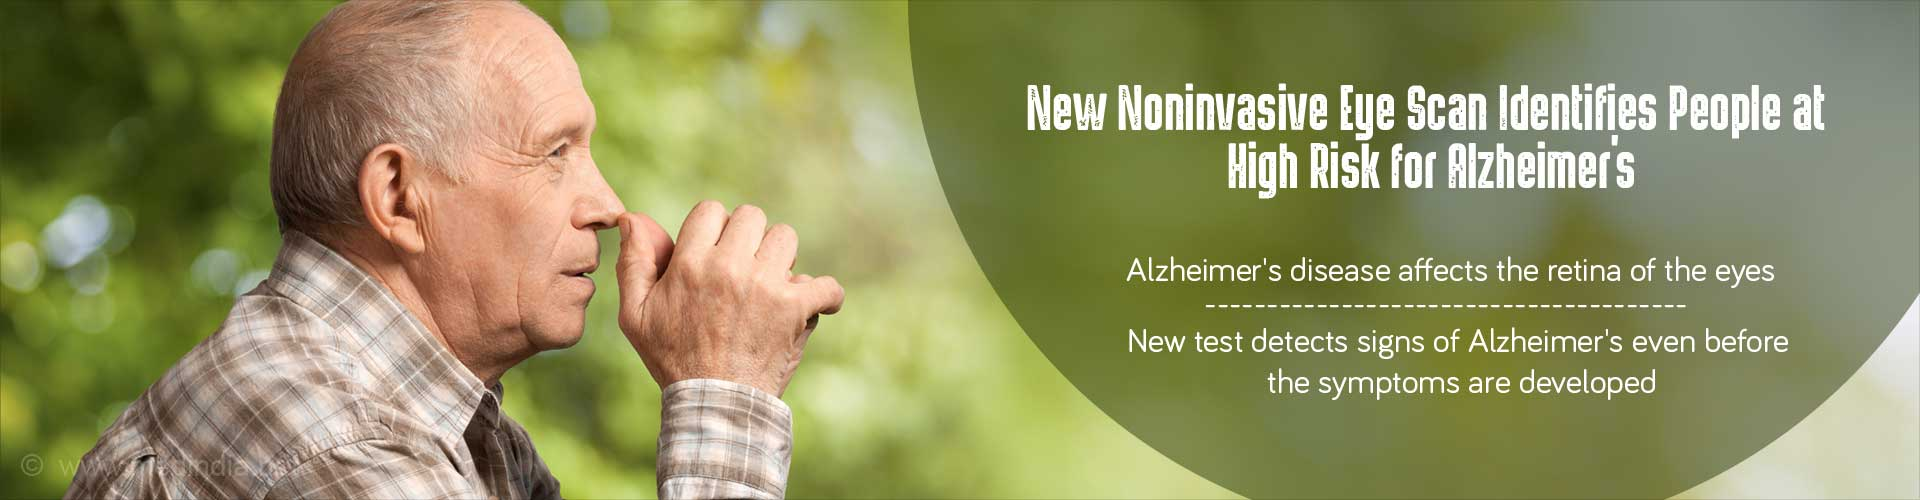 New Hope For Early Detection And Monitoring Of Alzheimer's Disease